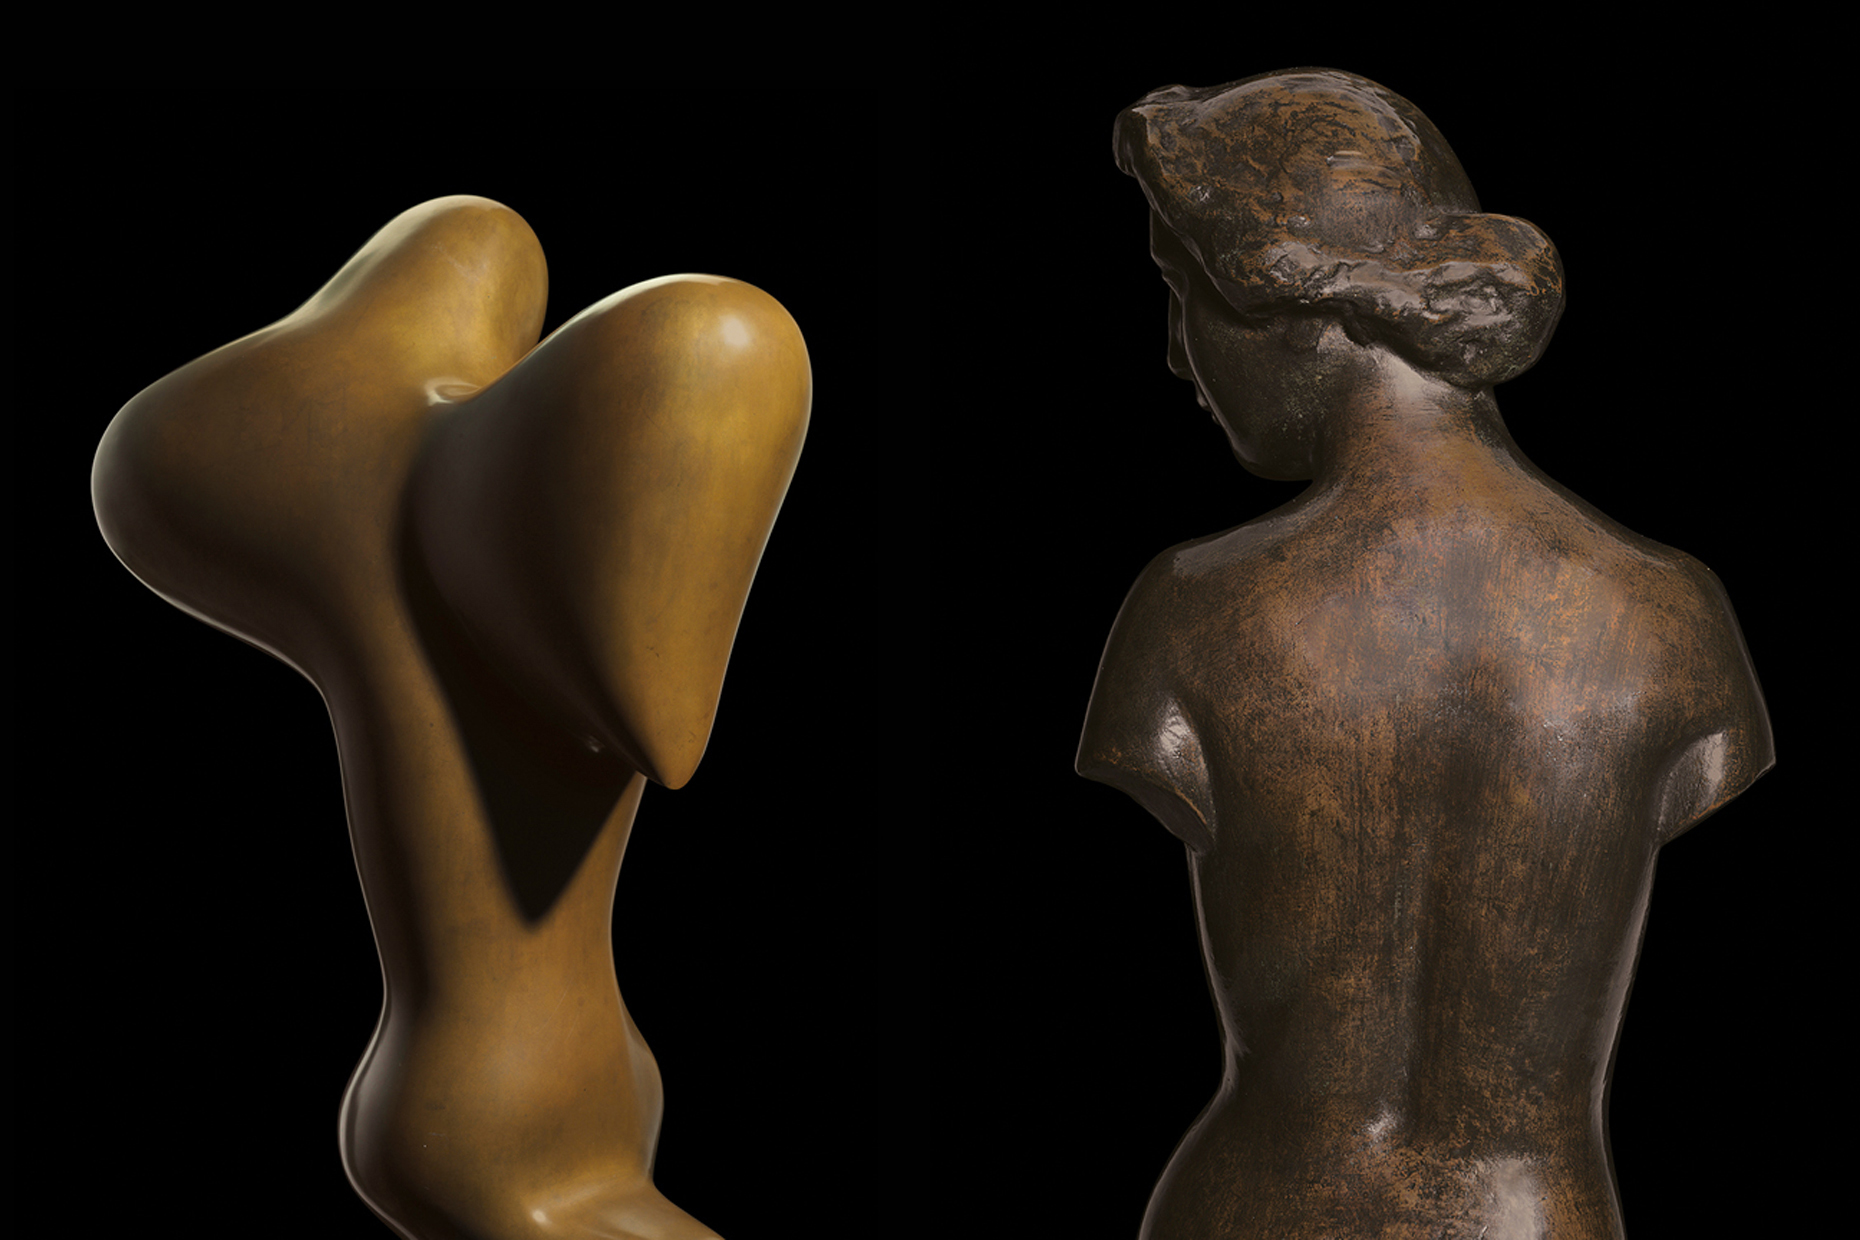 Two beautiful bronze statues museum artwork photography